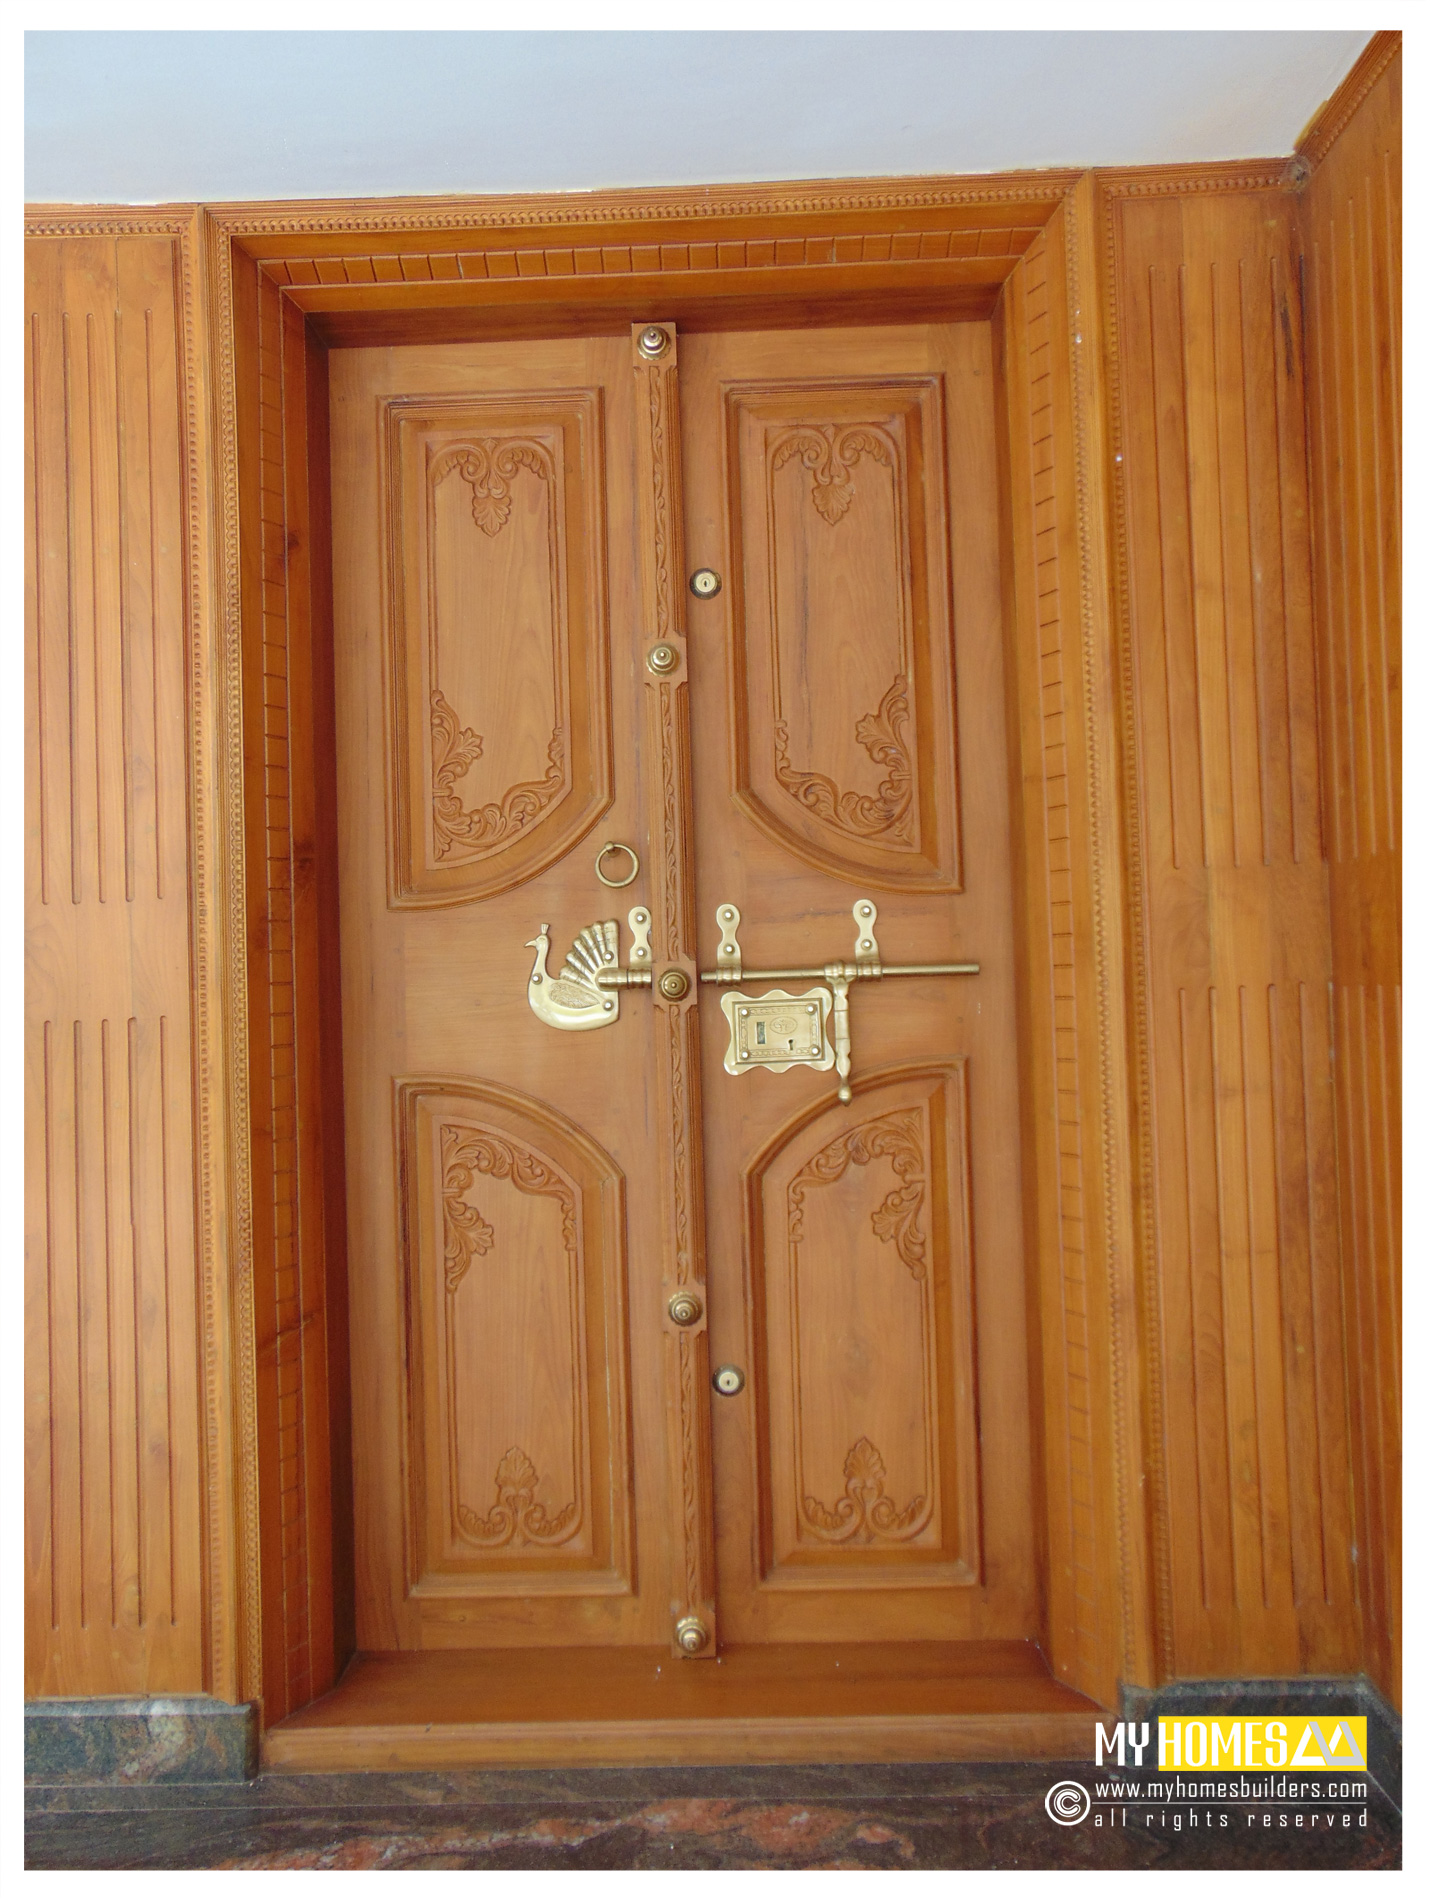 New idea for homes main door designs in kerala india - Indian home front door design ...